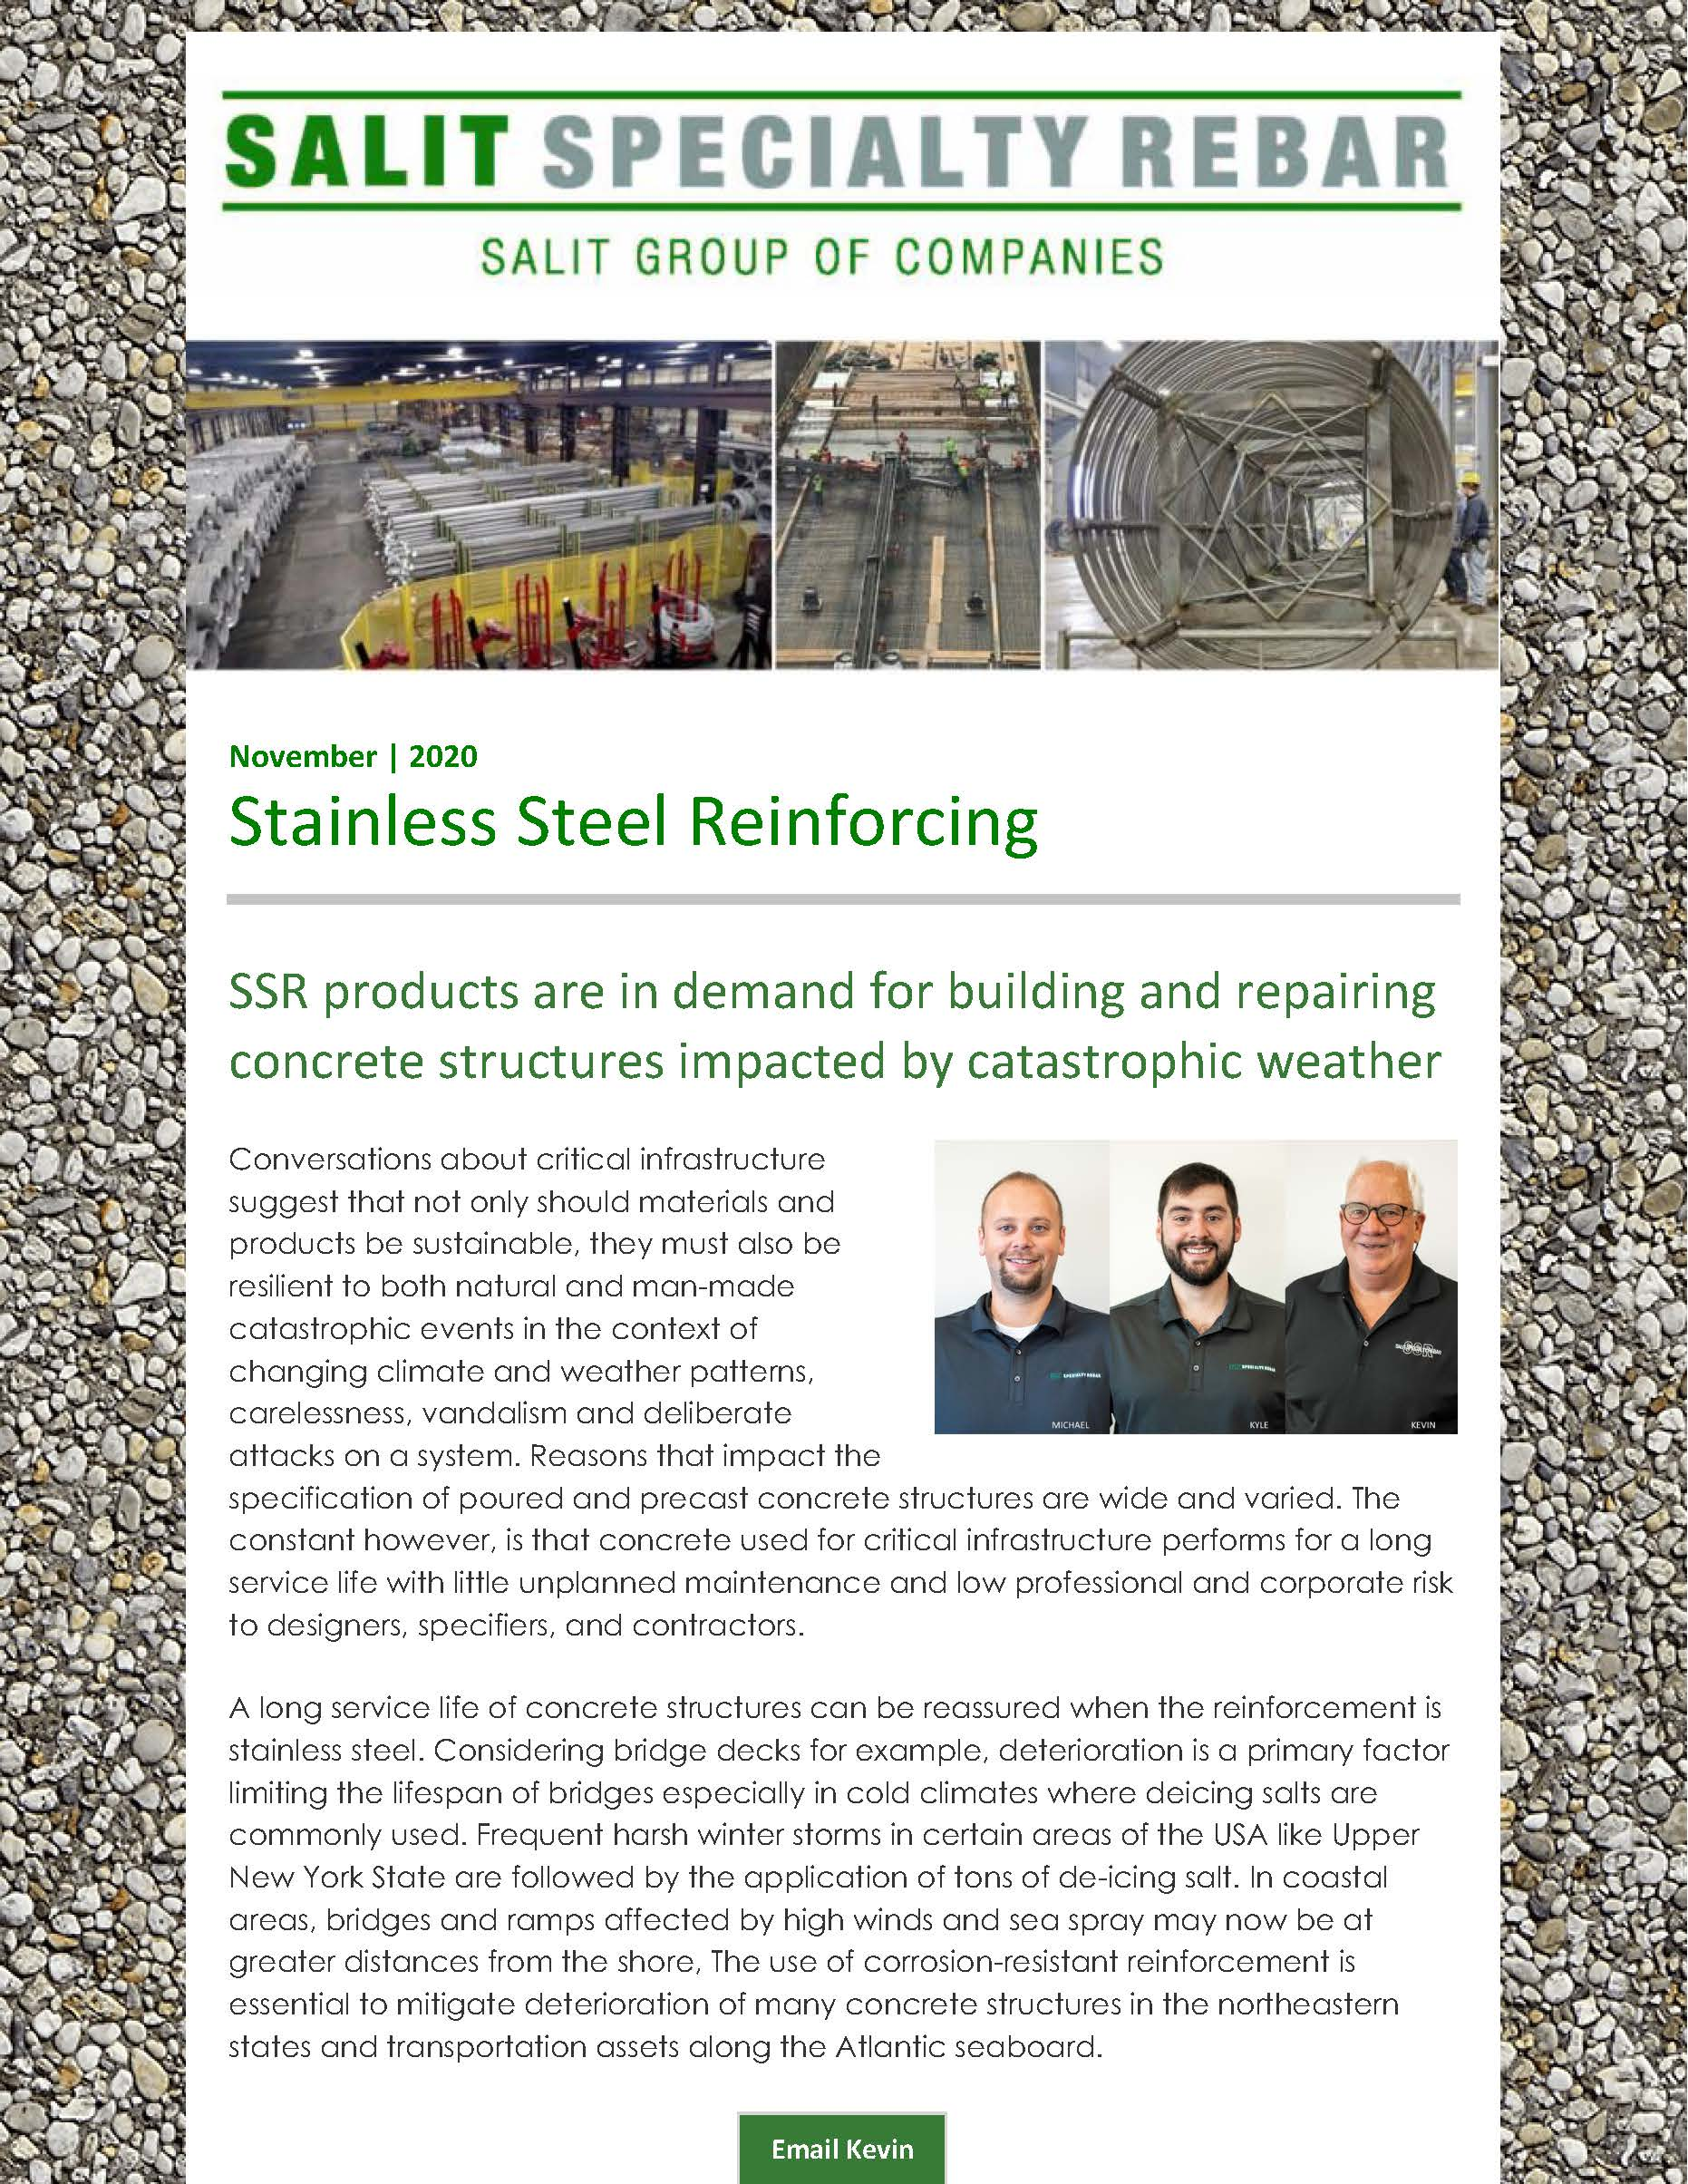 Stainless Steel Reinforcing